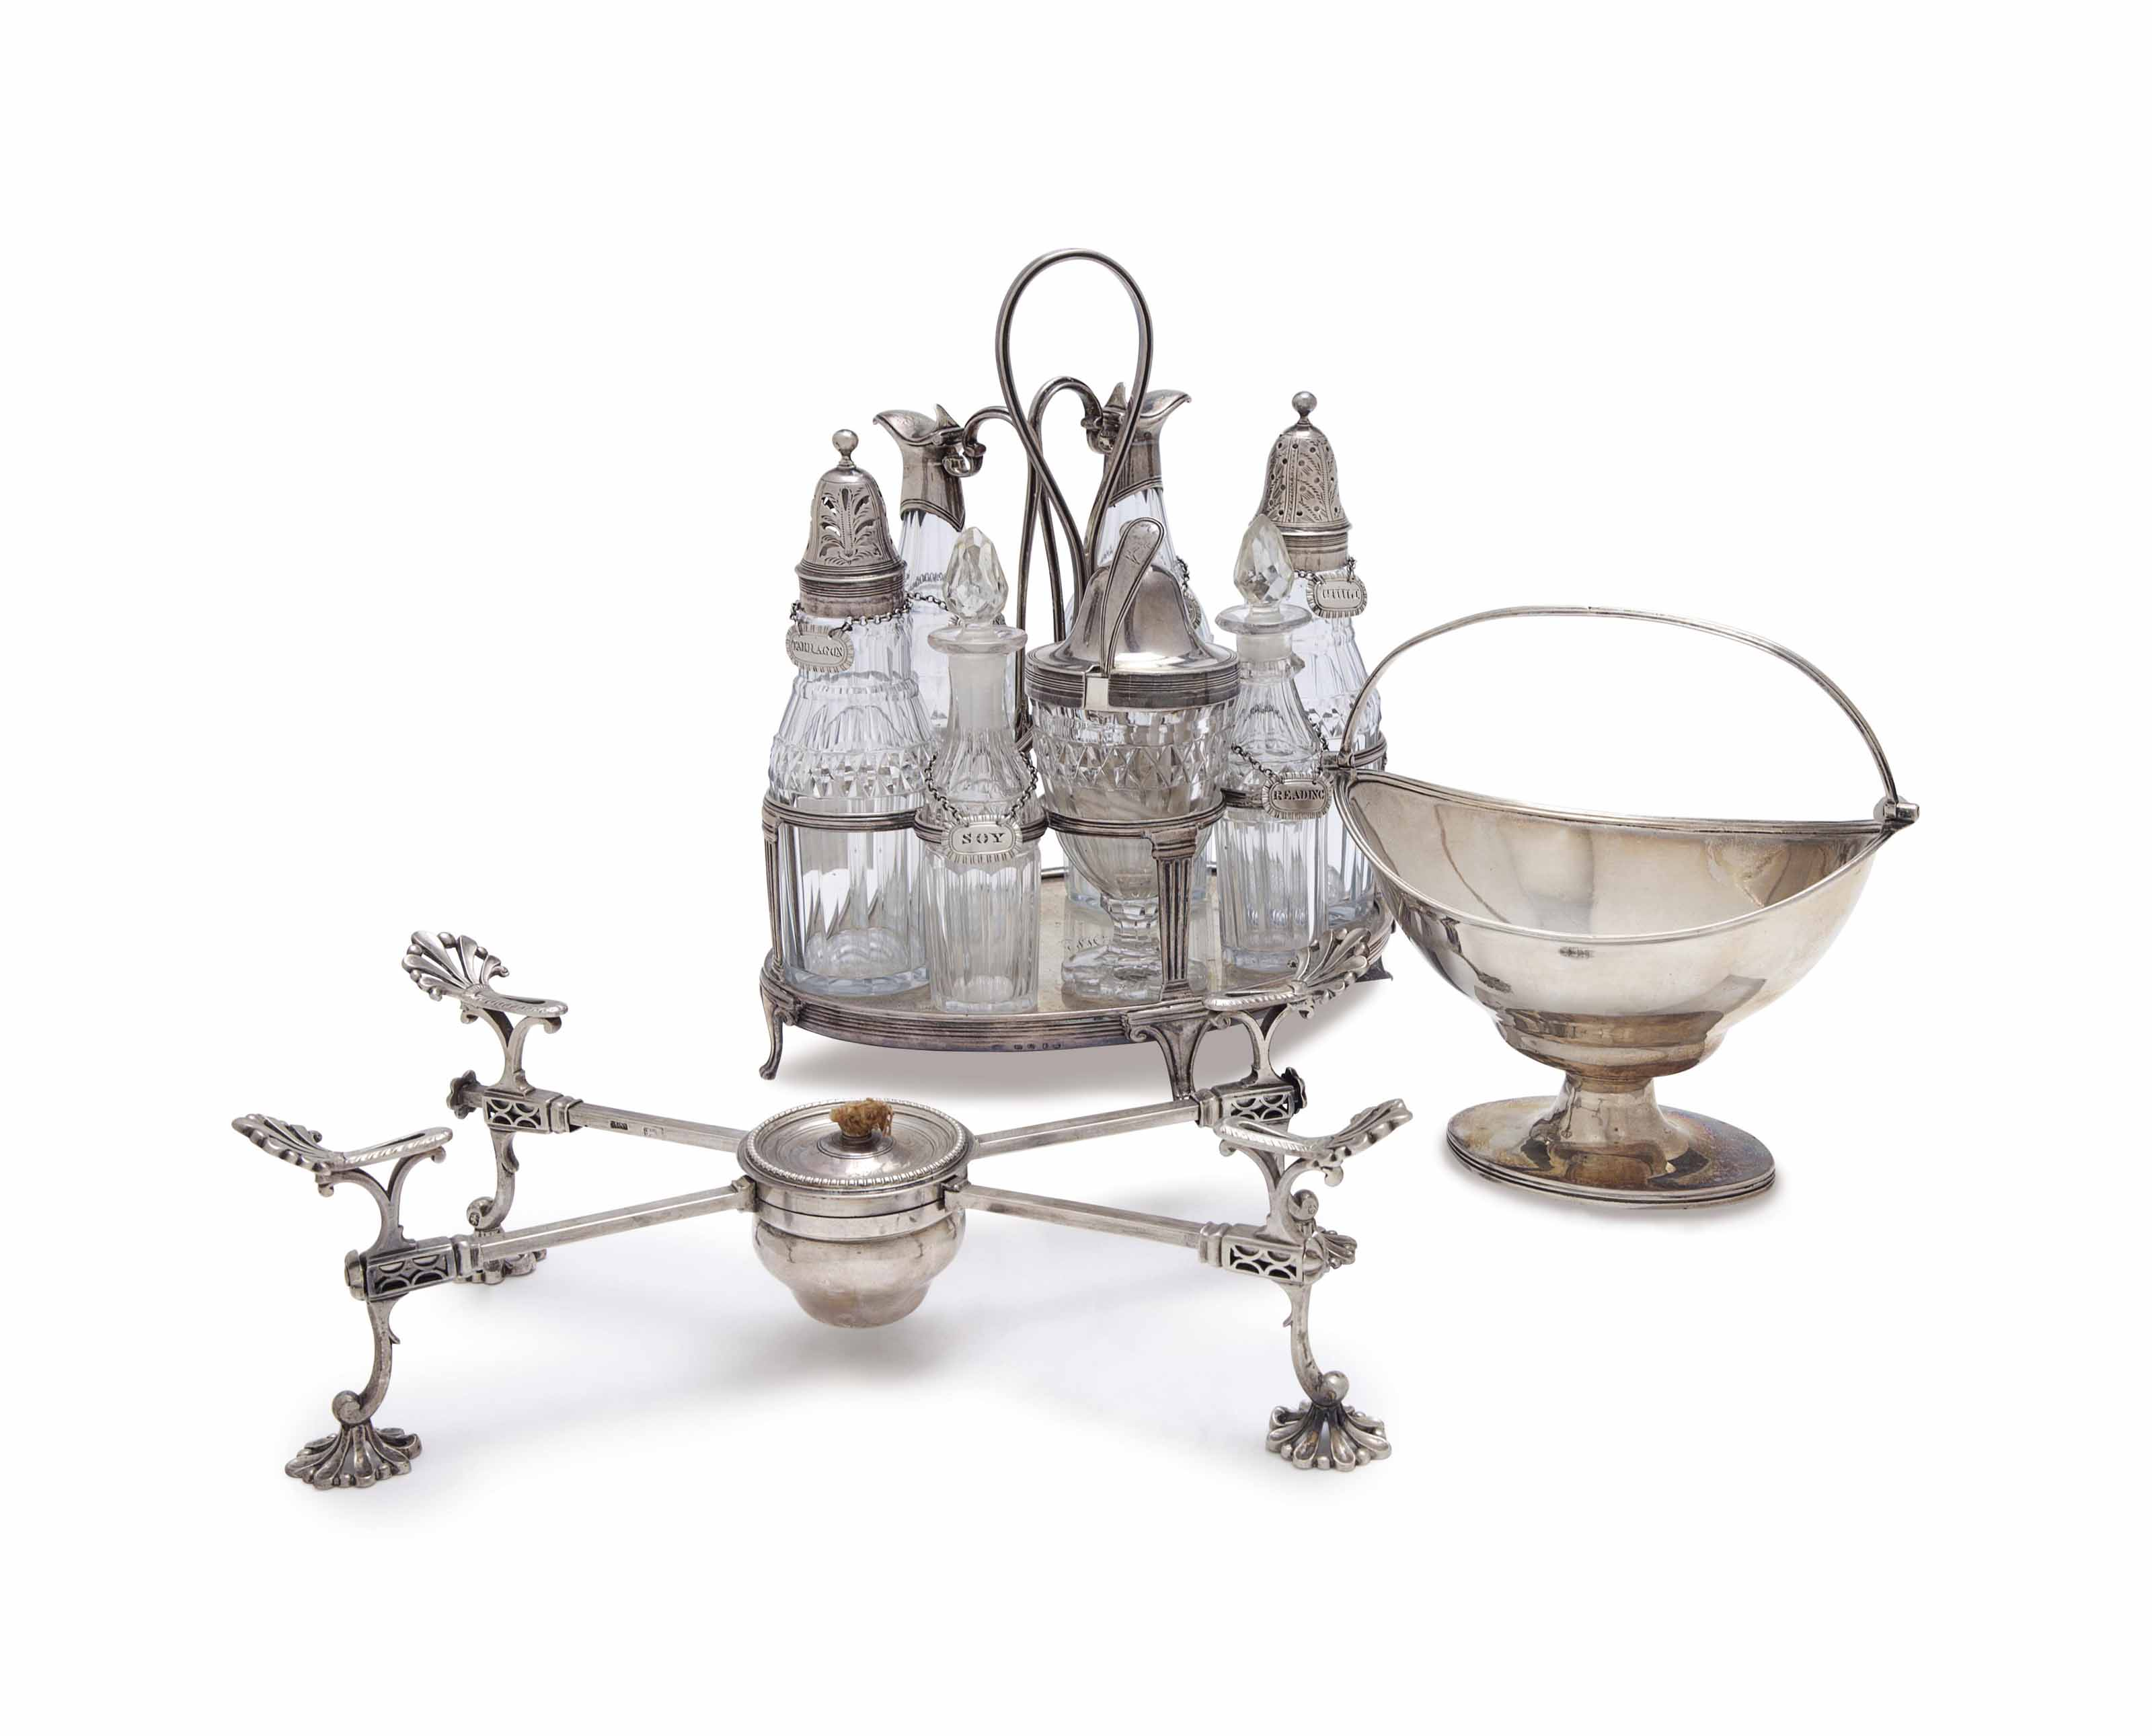 A GROUP OF GEORGE II AND GEORGE III SILVER AND CUT GLASS WARES,